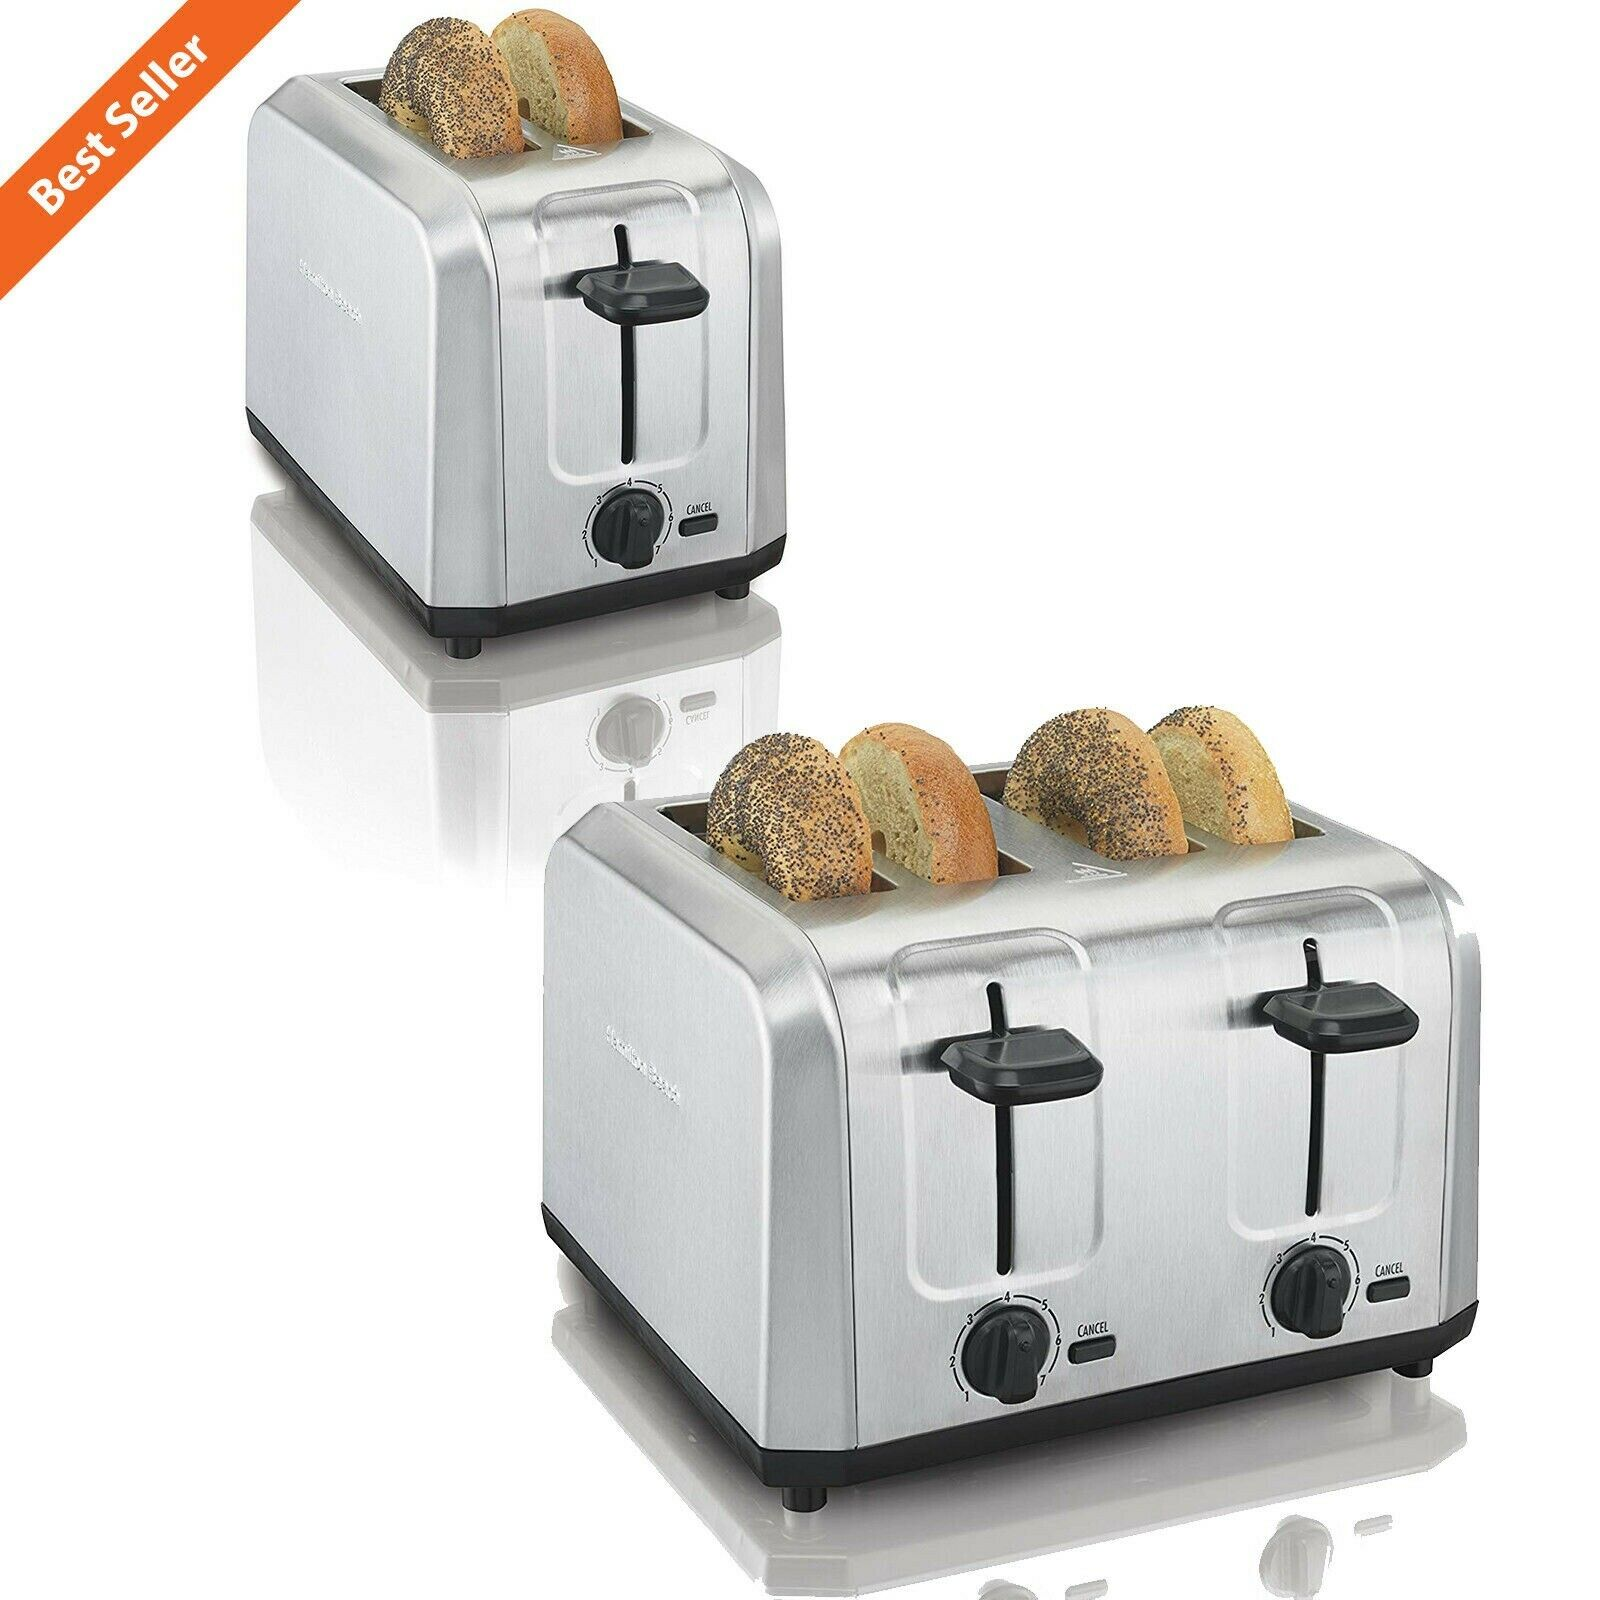 Brushed Stainless Steel 2 / 4 Slice Toaster Extra-Wide Slots